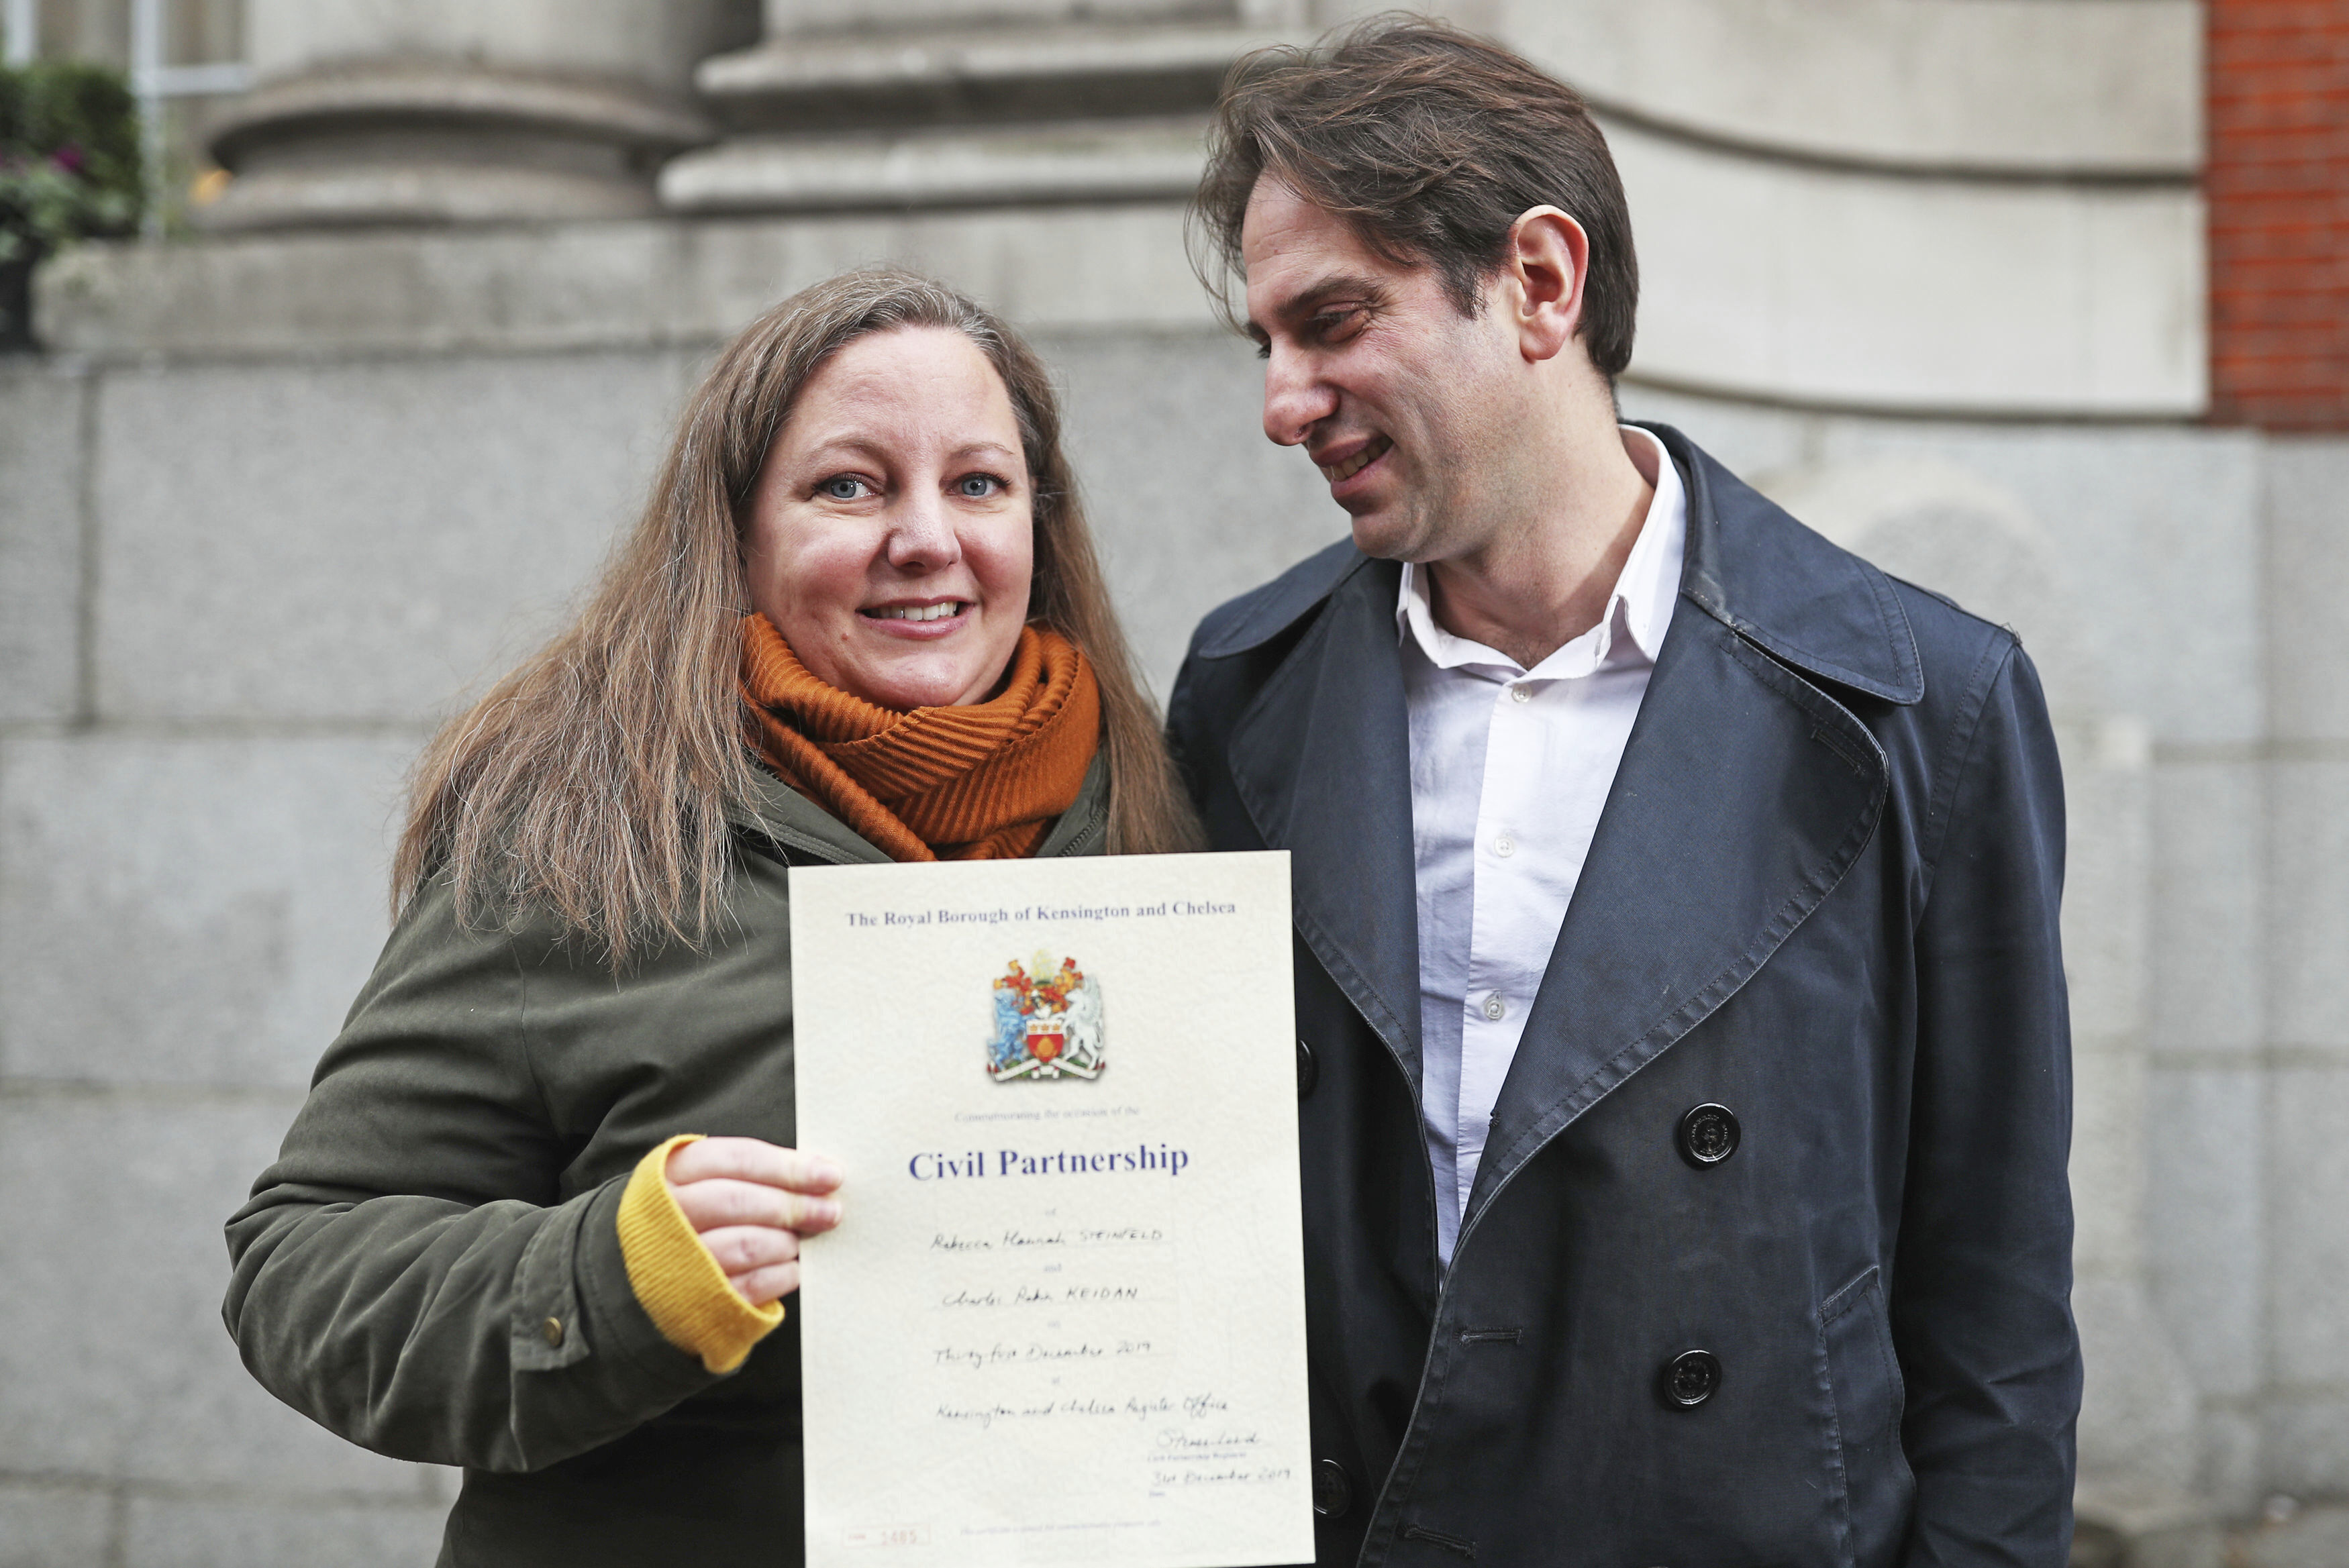 Rebecca Steinfeld and Charles Keidan pose for the media outside at Kensington and Chelsea Register Office after registering for a civil partnership, in London on Dec. 31, 2019.